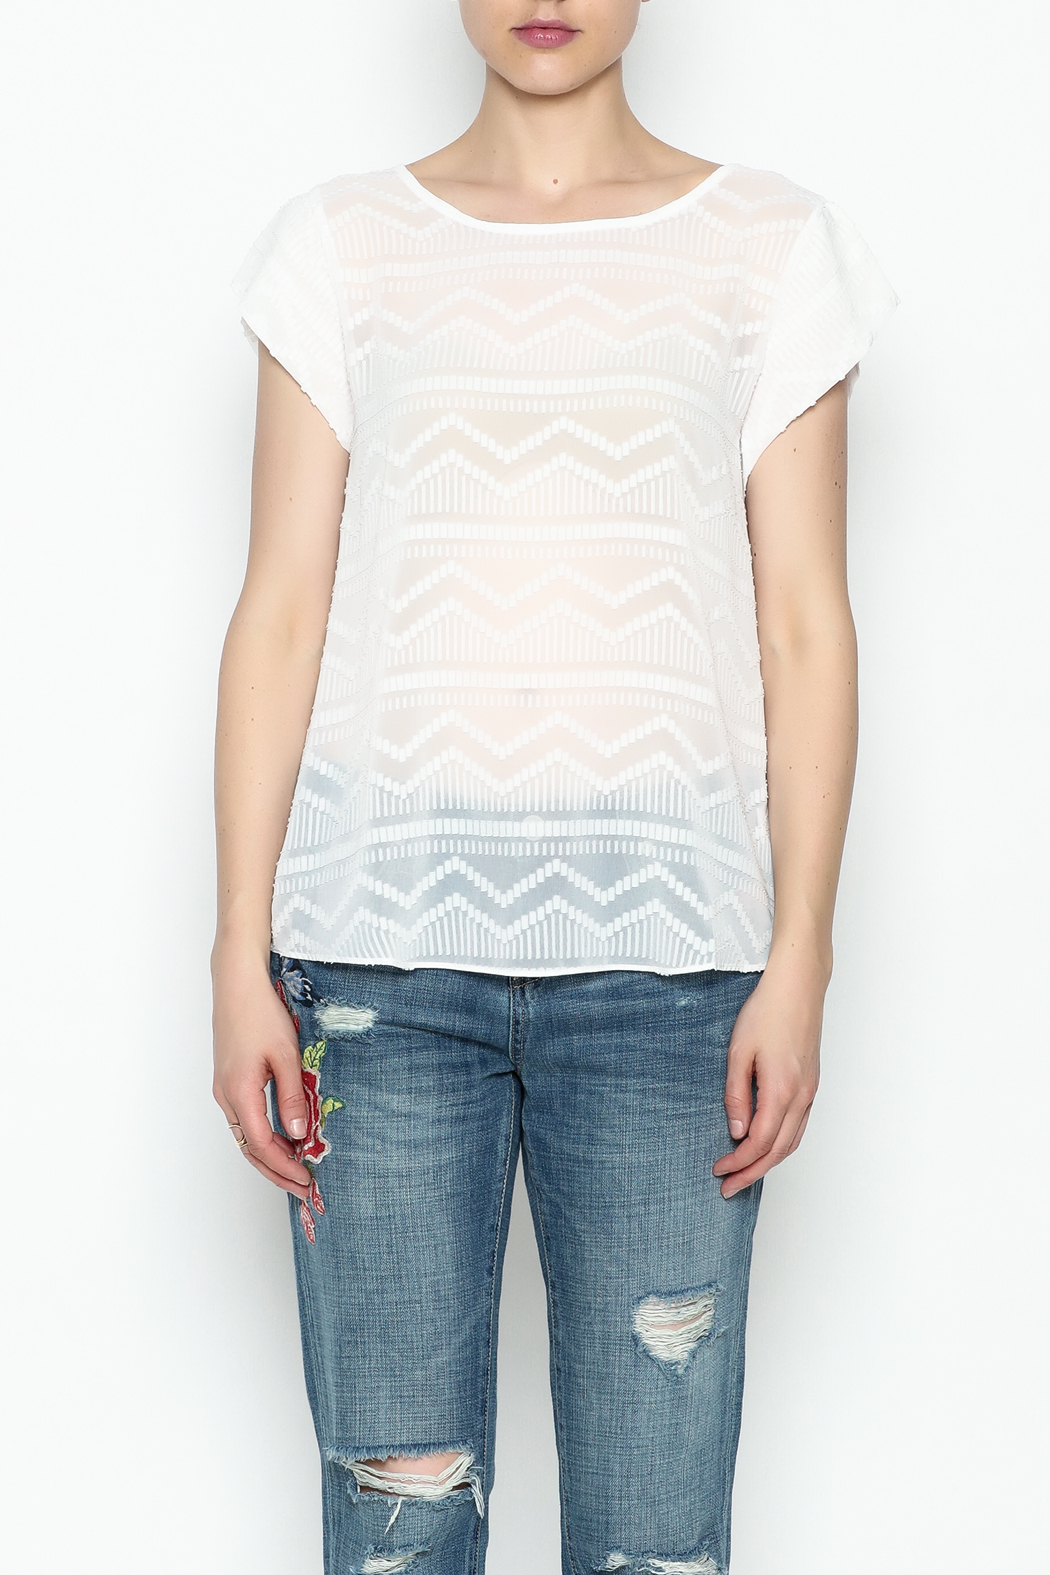 Zoa Aztec Embroidered Blouse - Front Cropped Image